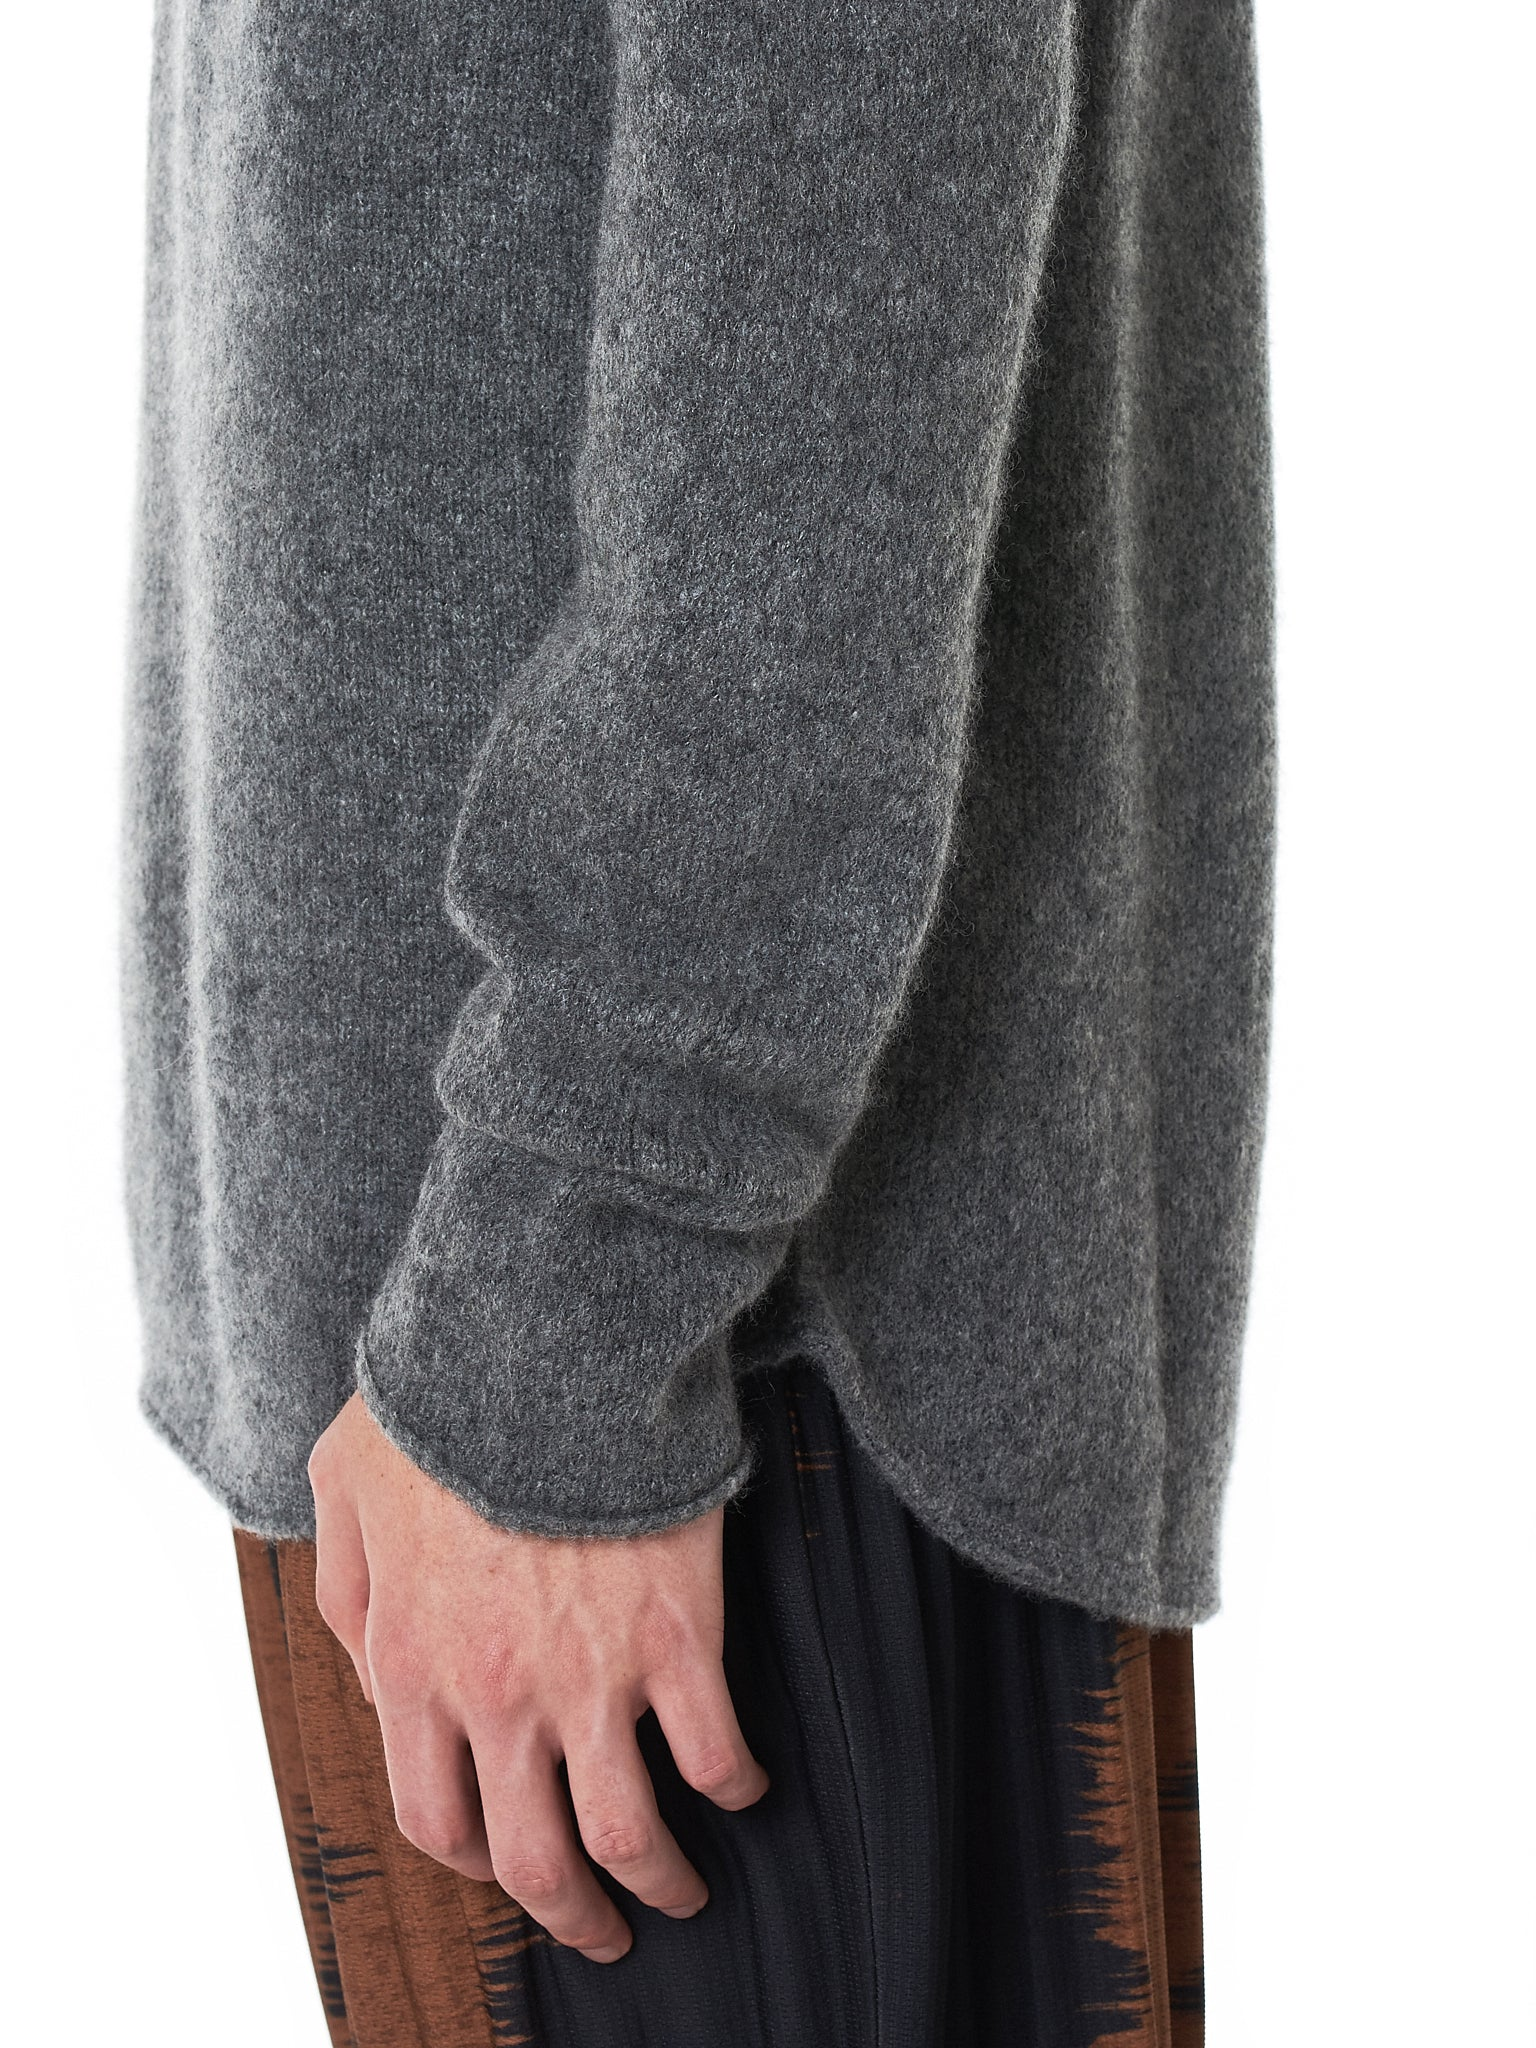 Denis Colomb Sweater - Hlorenzo Sleeve Detail